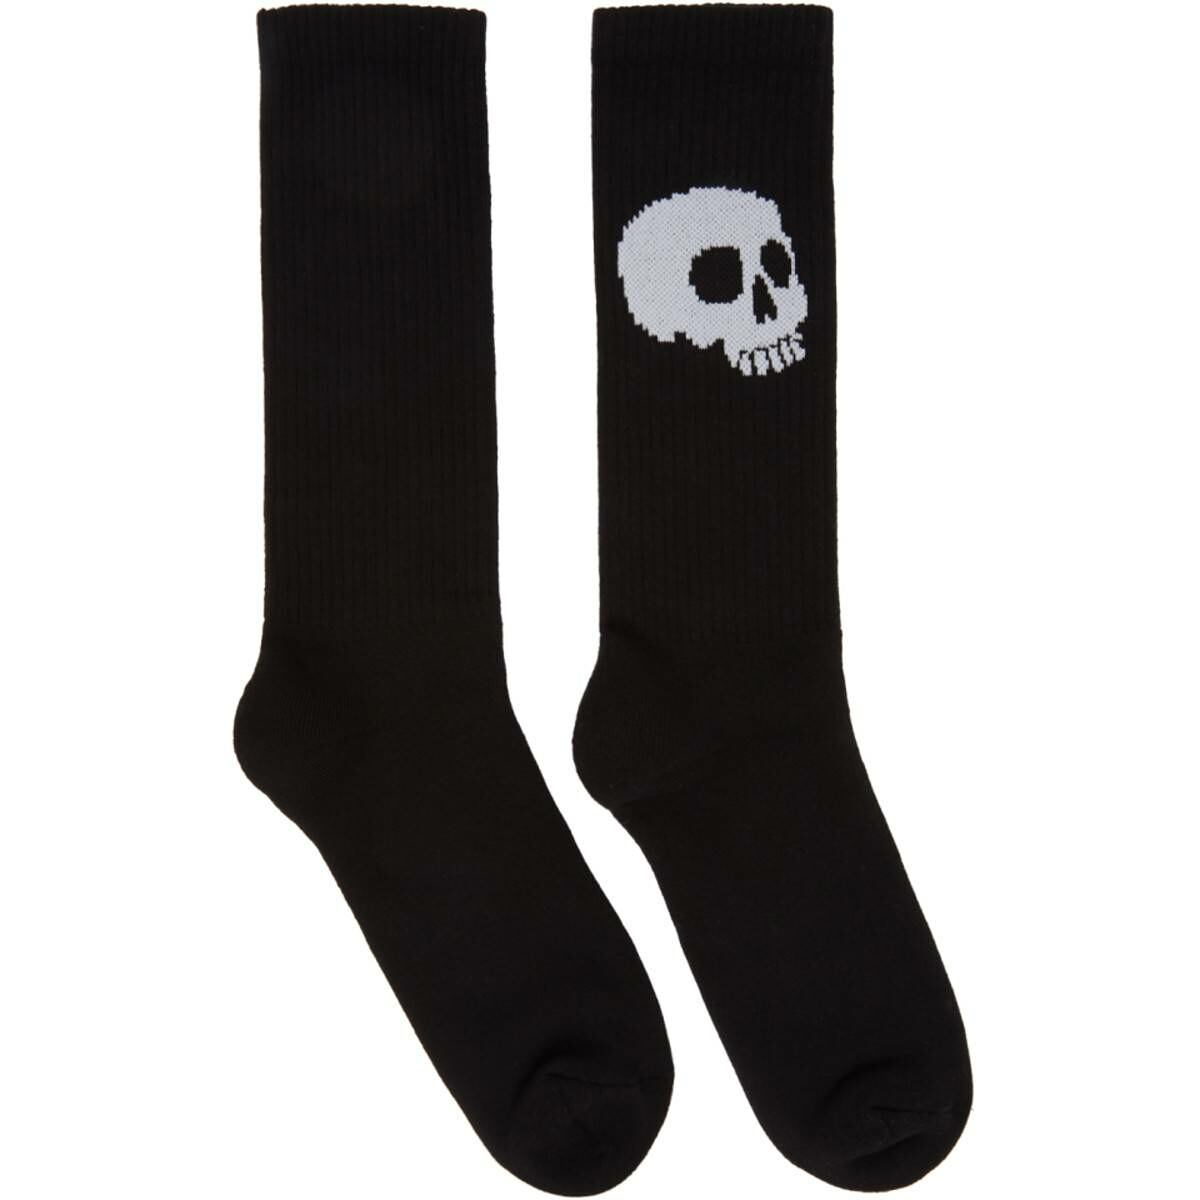 Palm Angels Black and White Skull Socks Ssense USA MEN Men ACCESSORIES Mens SOCKS